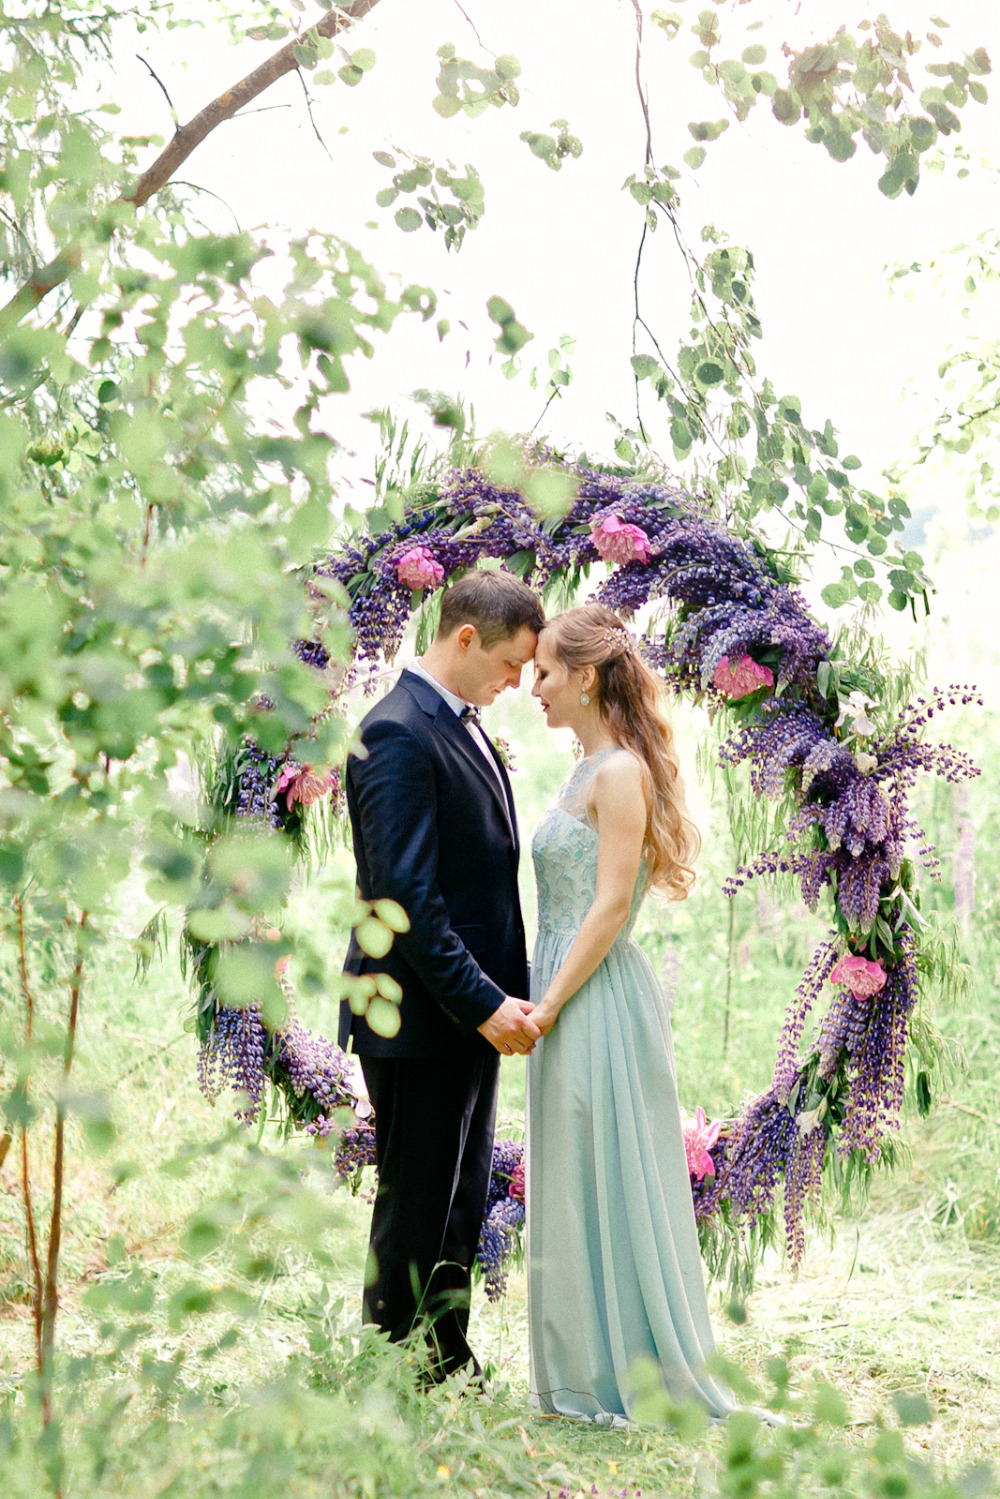 vow renewal with floral backdrop